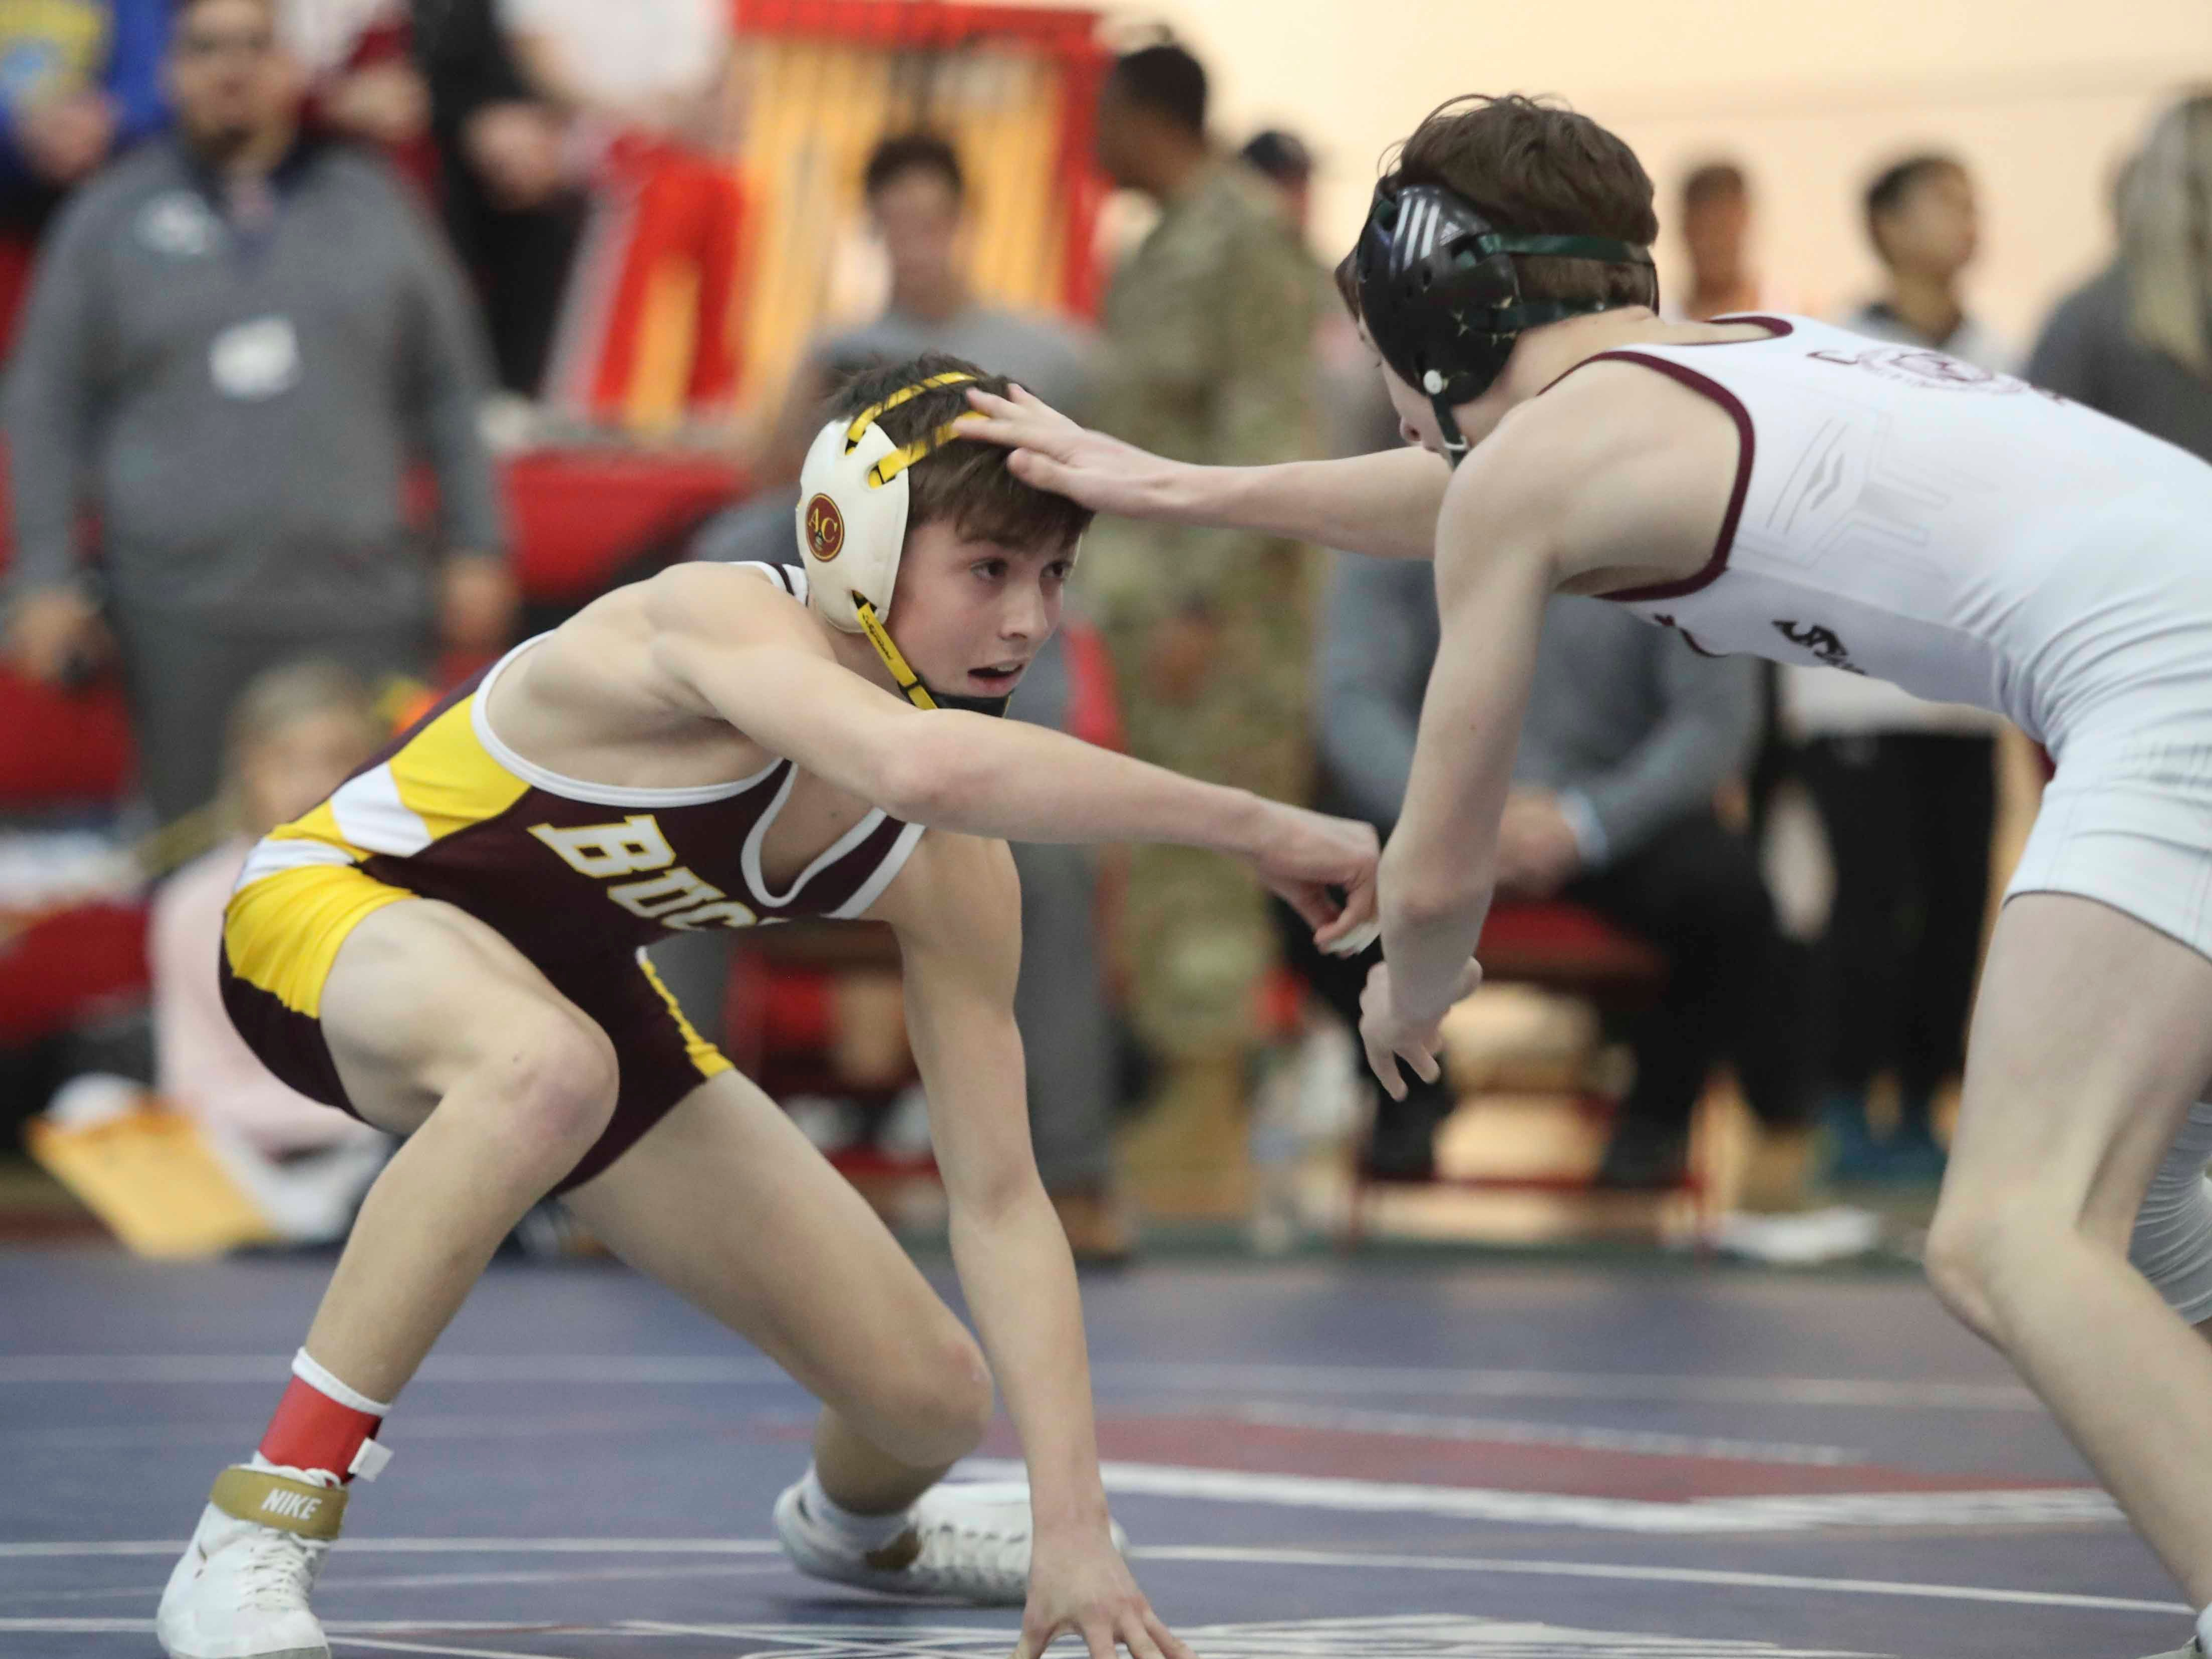 Milford's Corey Messick (left) works with Caravel's Luke Poore before Poore won a 2-0 decision at 106 pounds in the finals of the DIAA Division II dual meet championships Saturday at Smyrna High School.